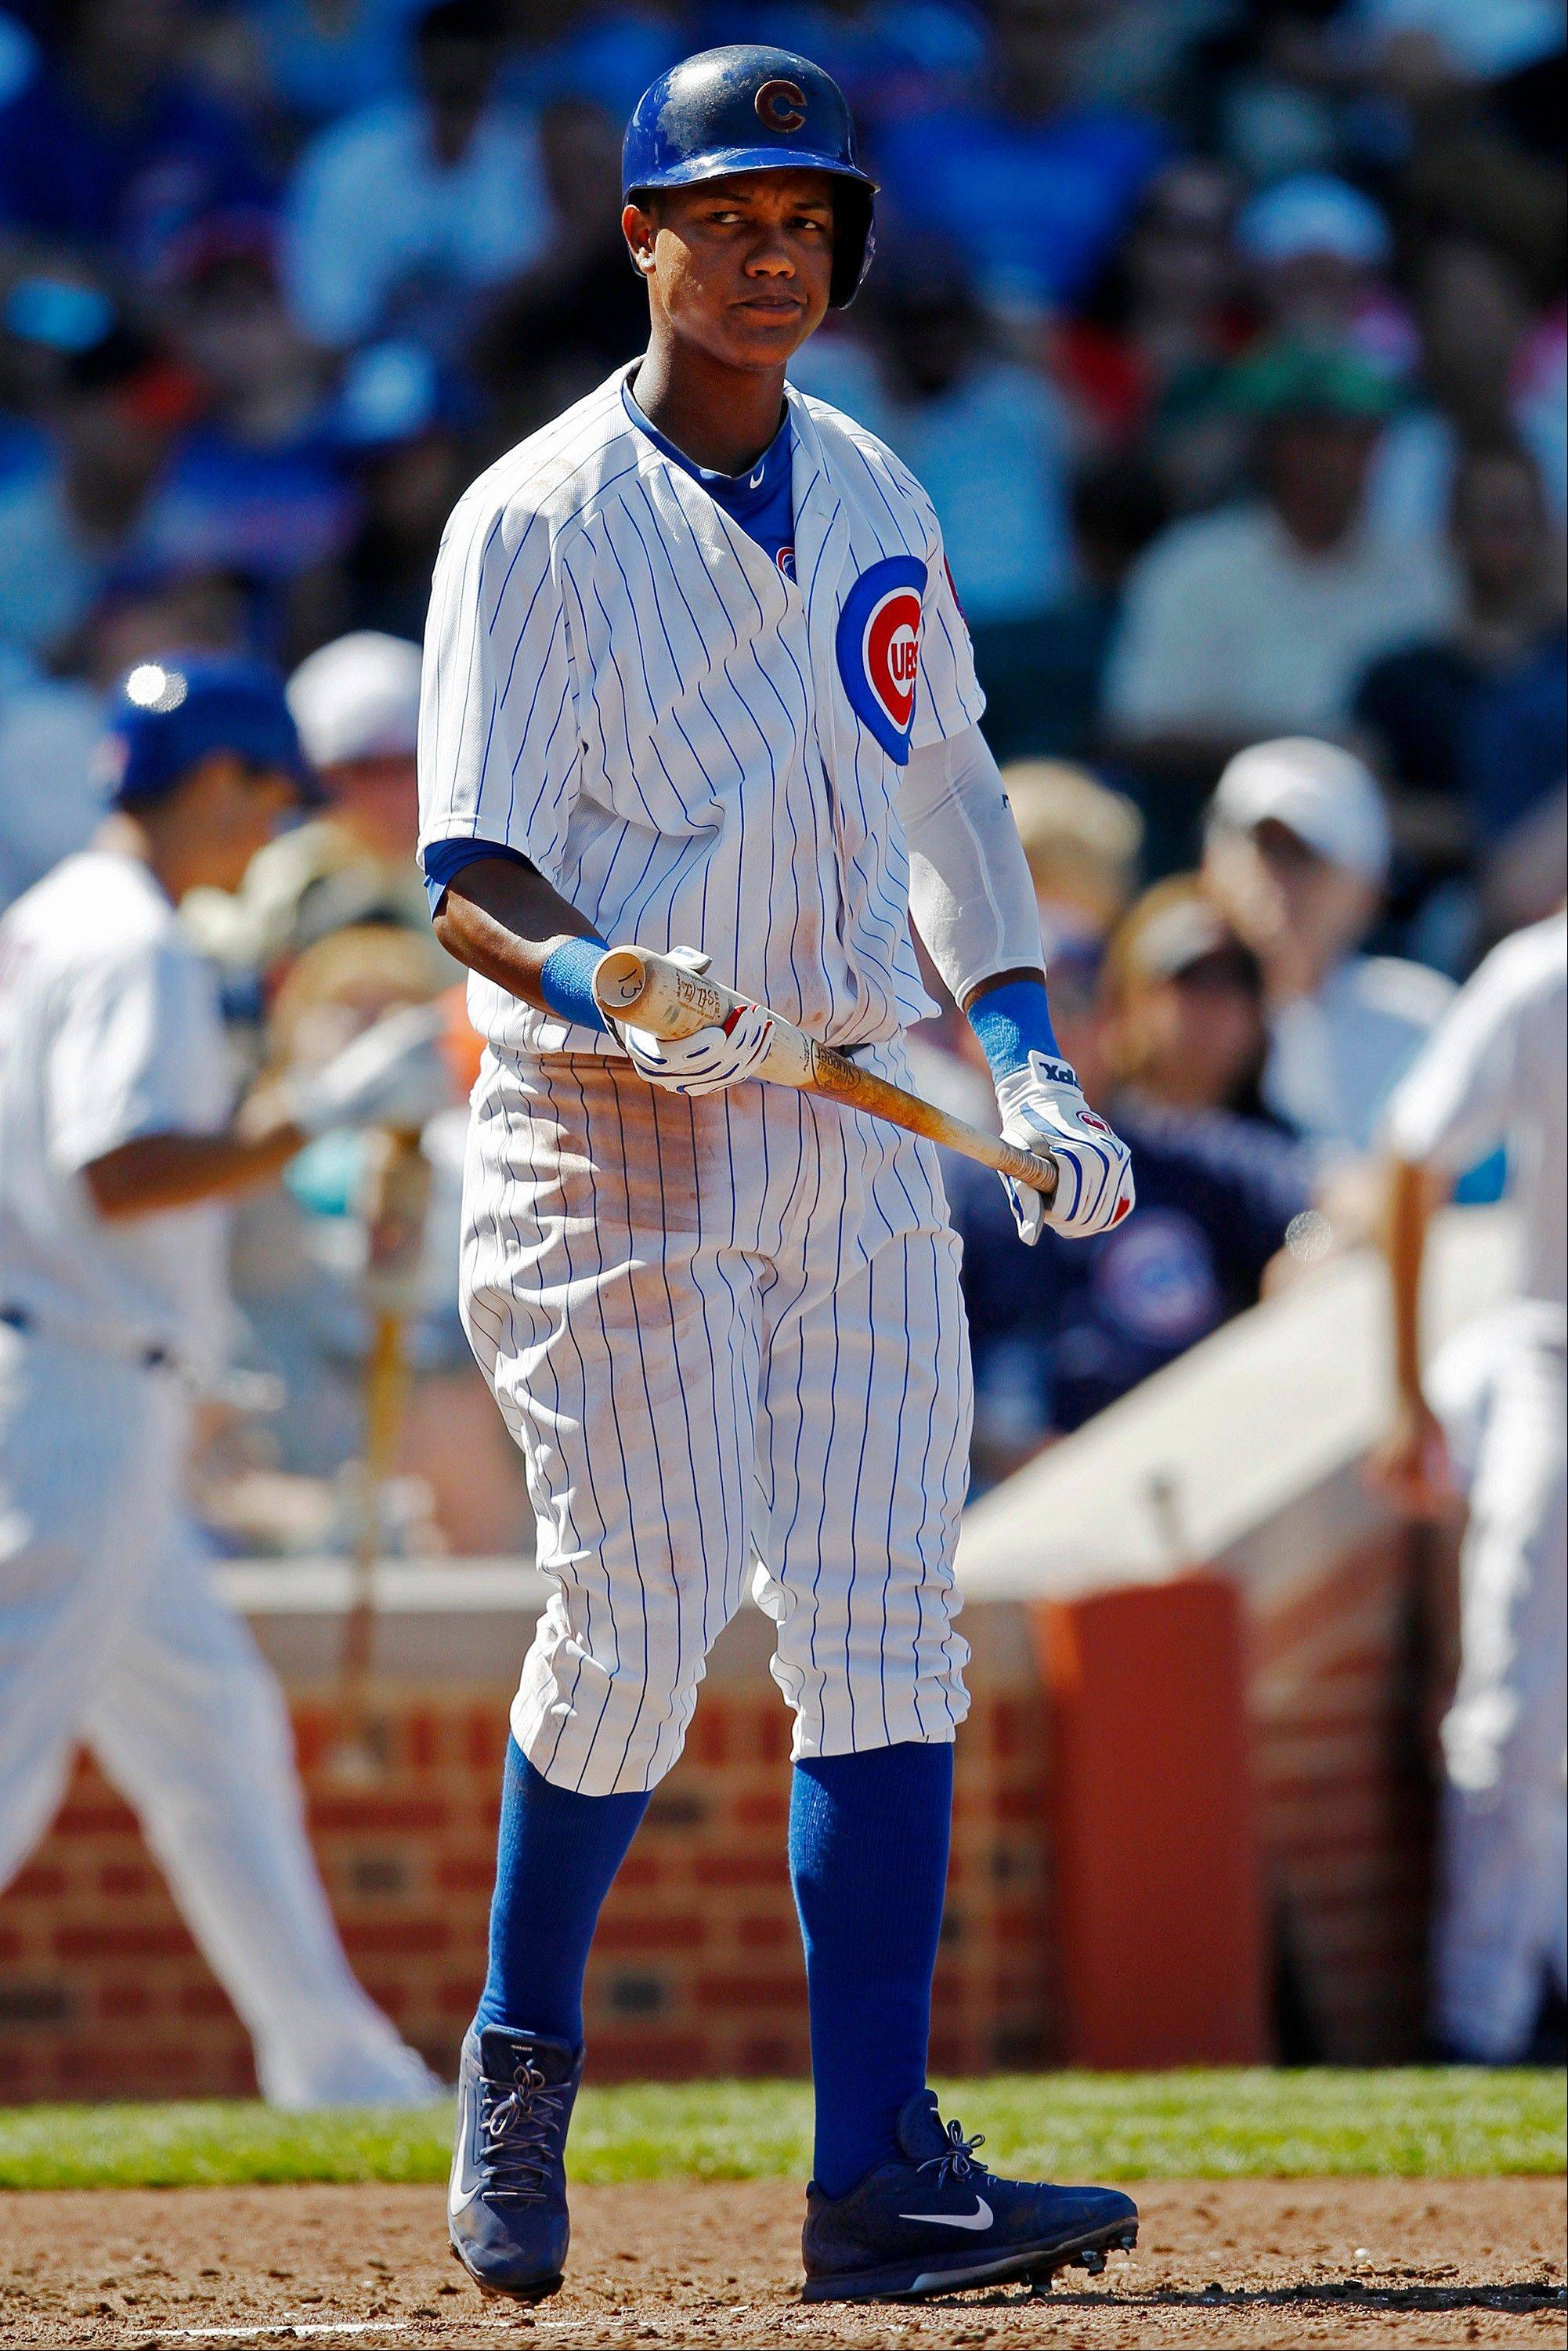 'Nervous' Castro right back in Cubs' lineup